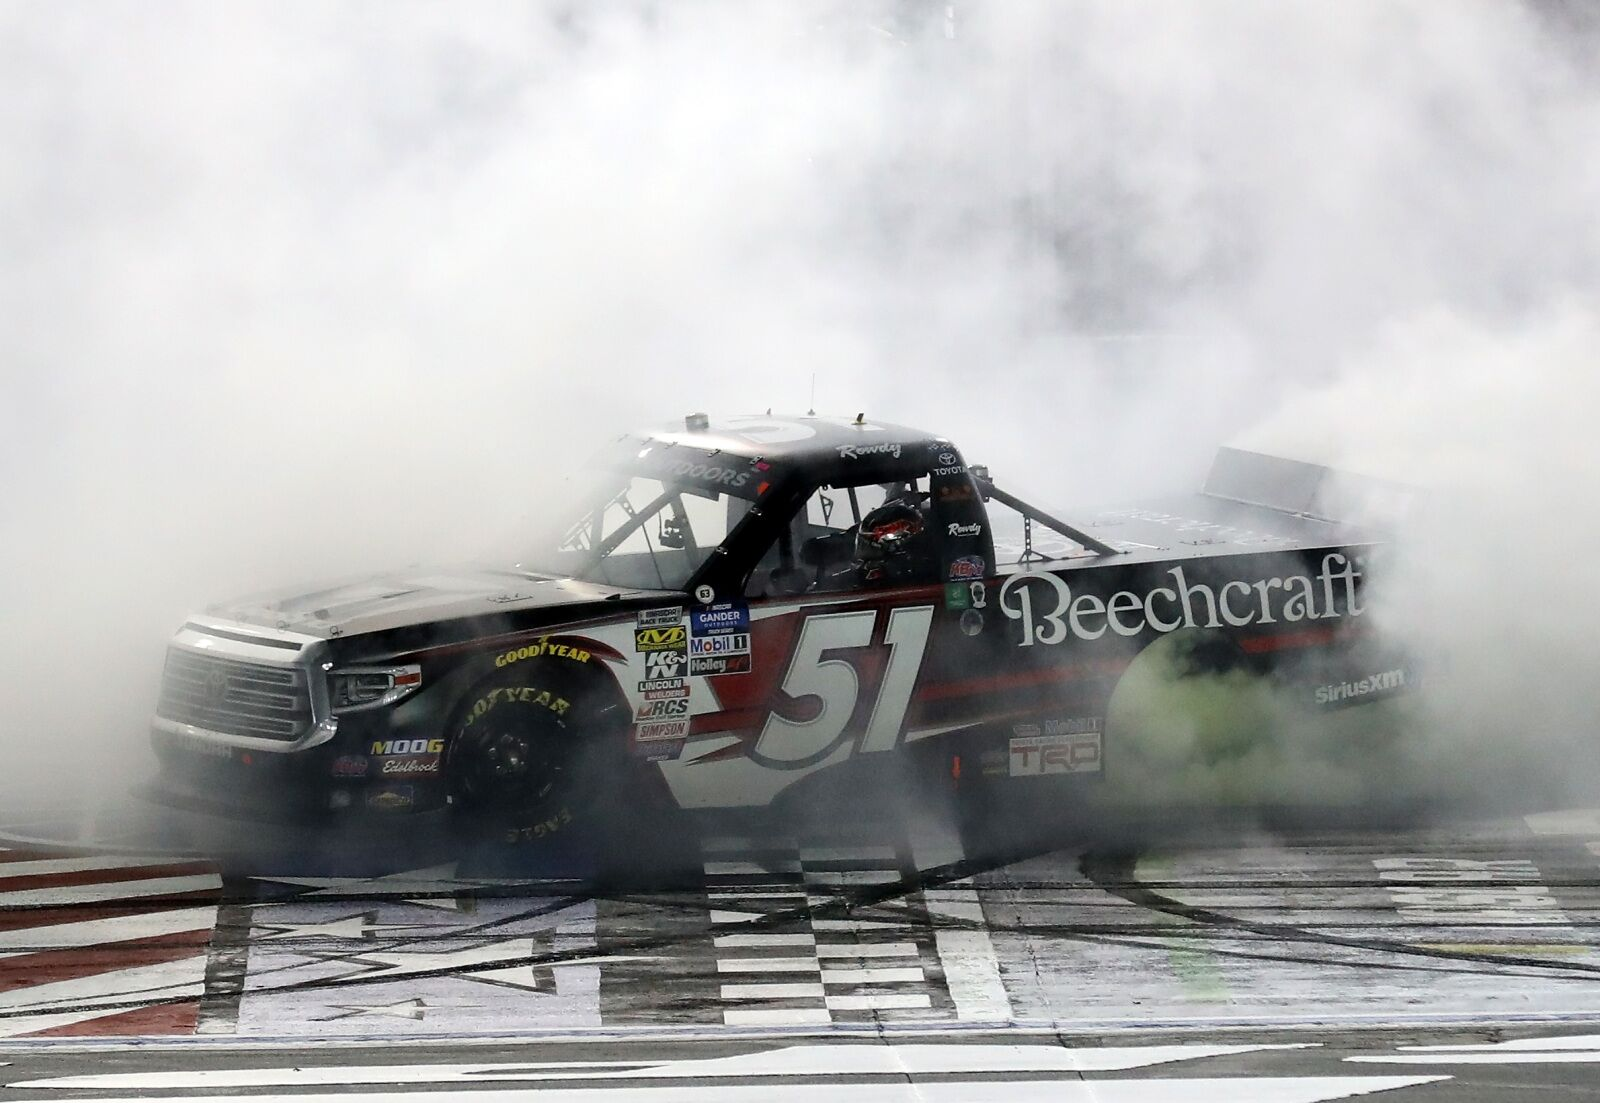 NASCAR Truck Series: Kyle Busch goes 5 for 5, wraps up perfect 2019 season